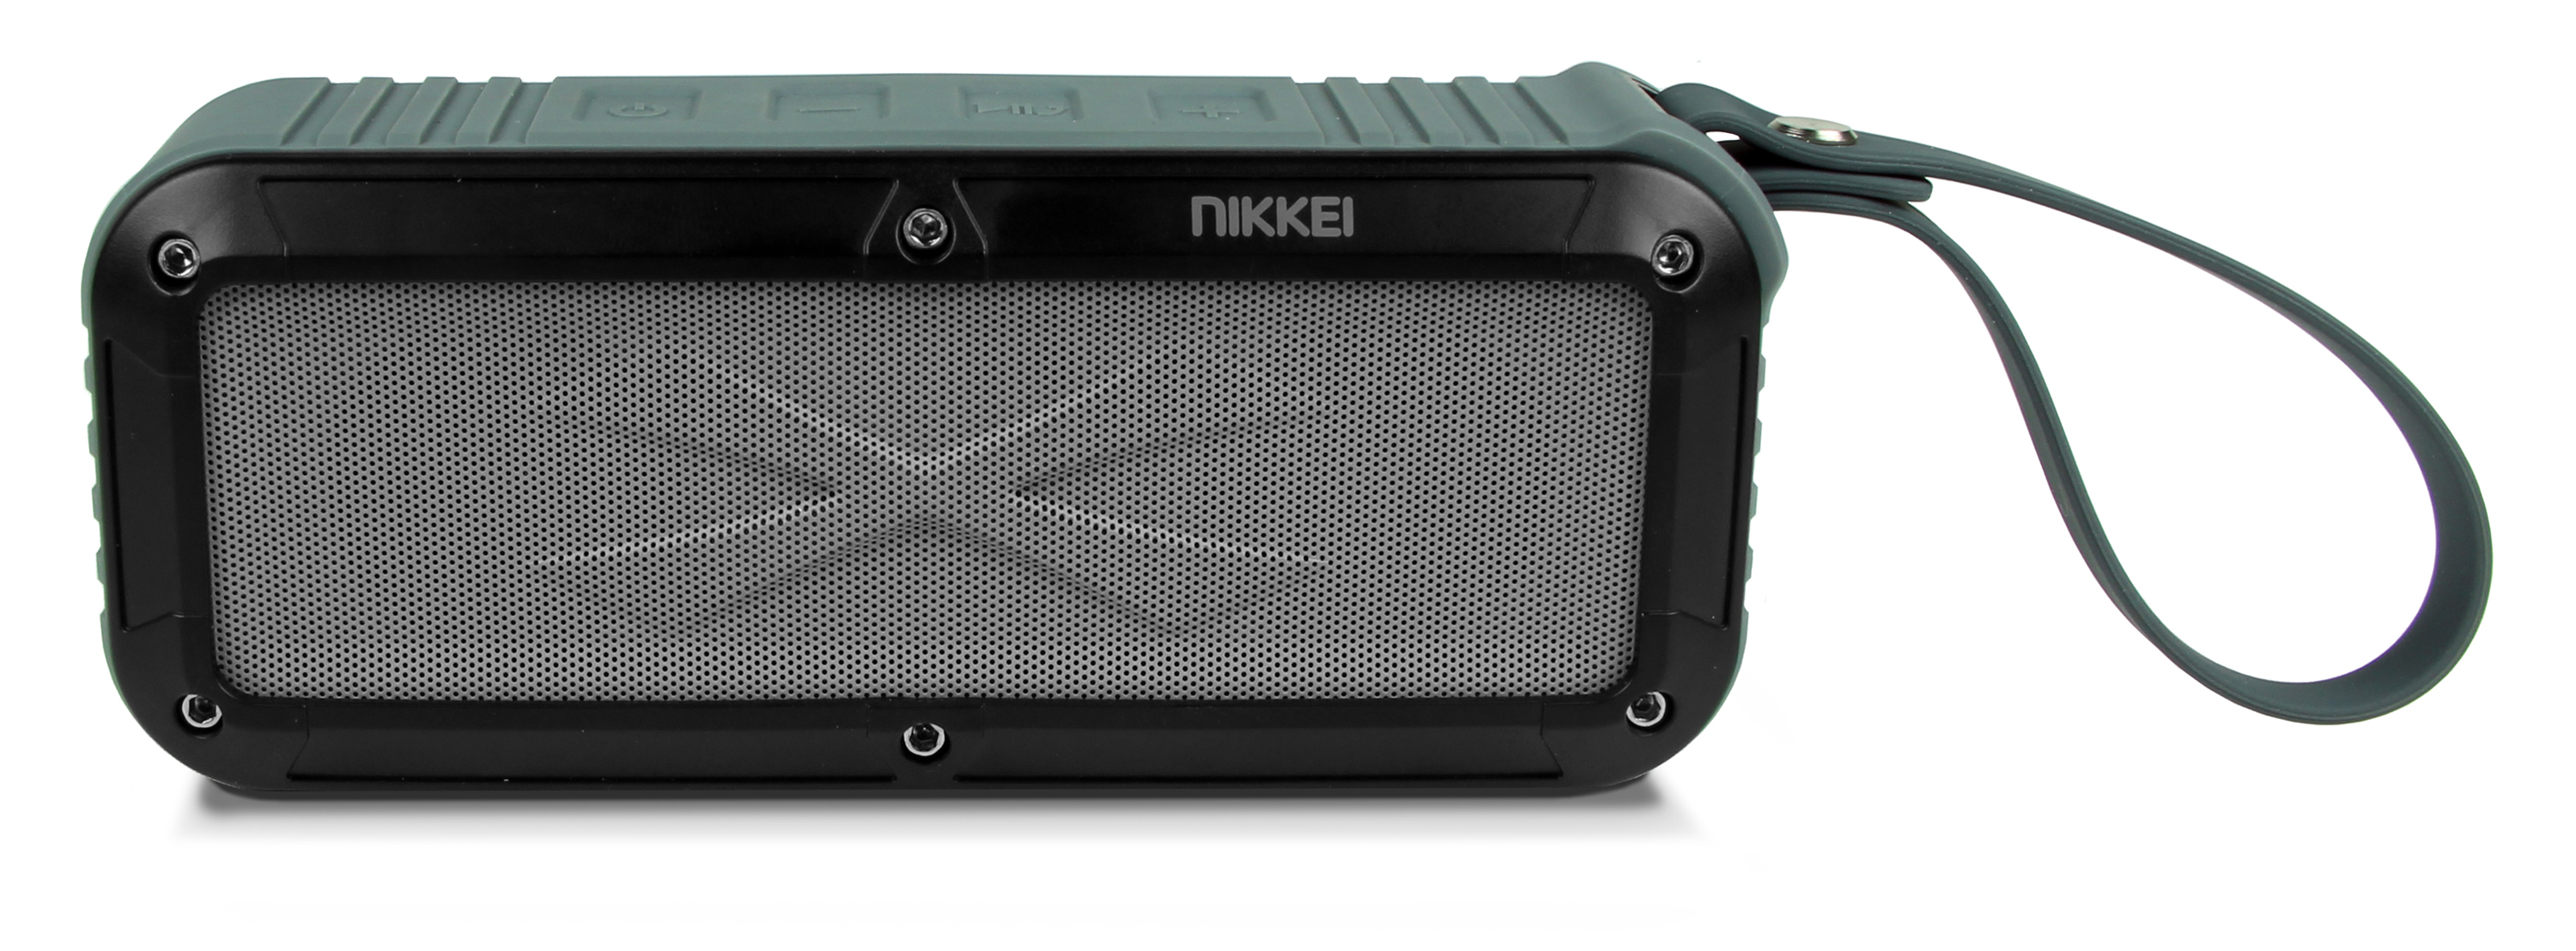 Nikkei BOXX3GY Waterproof BT Speaker  2x3W grey